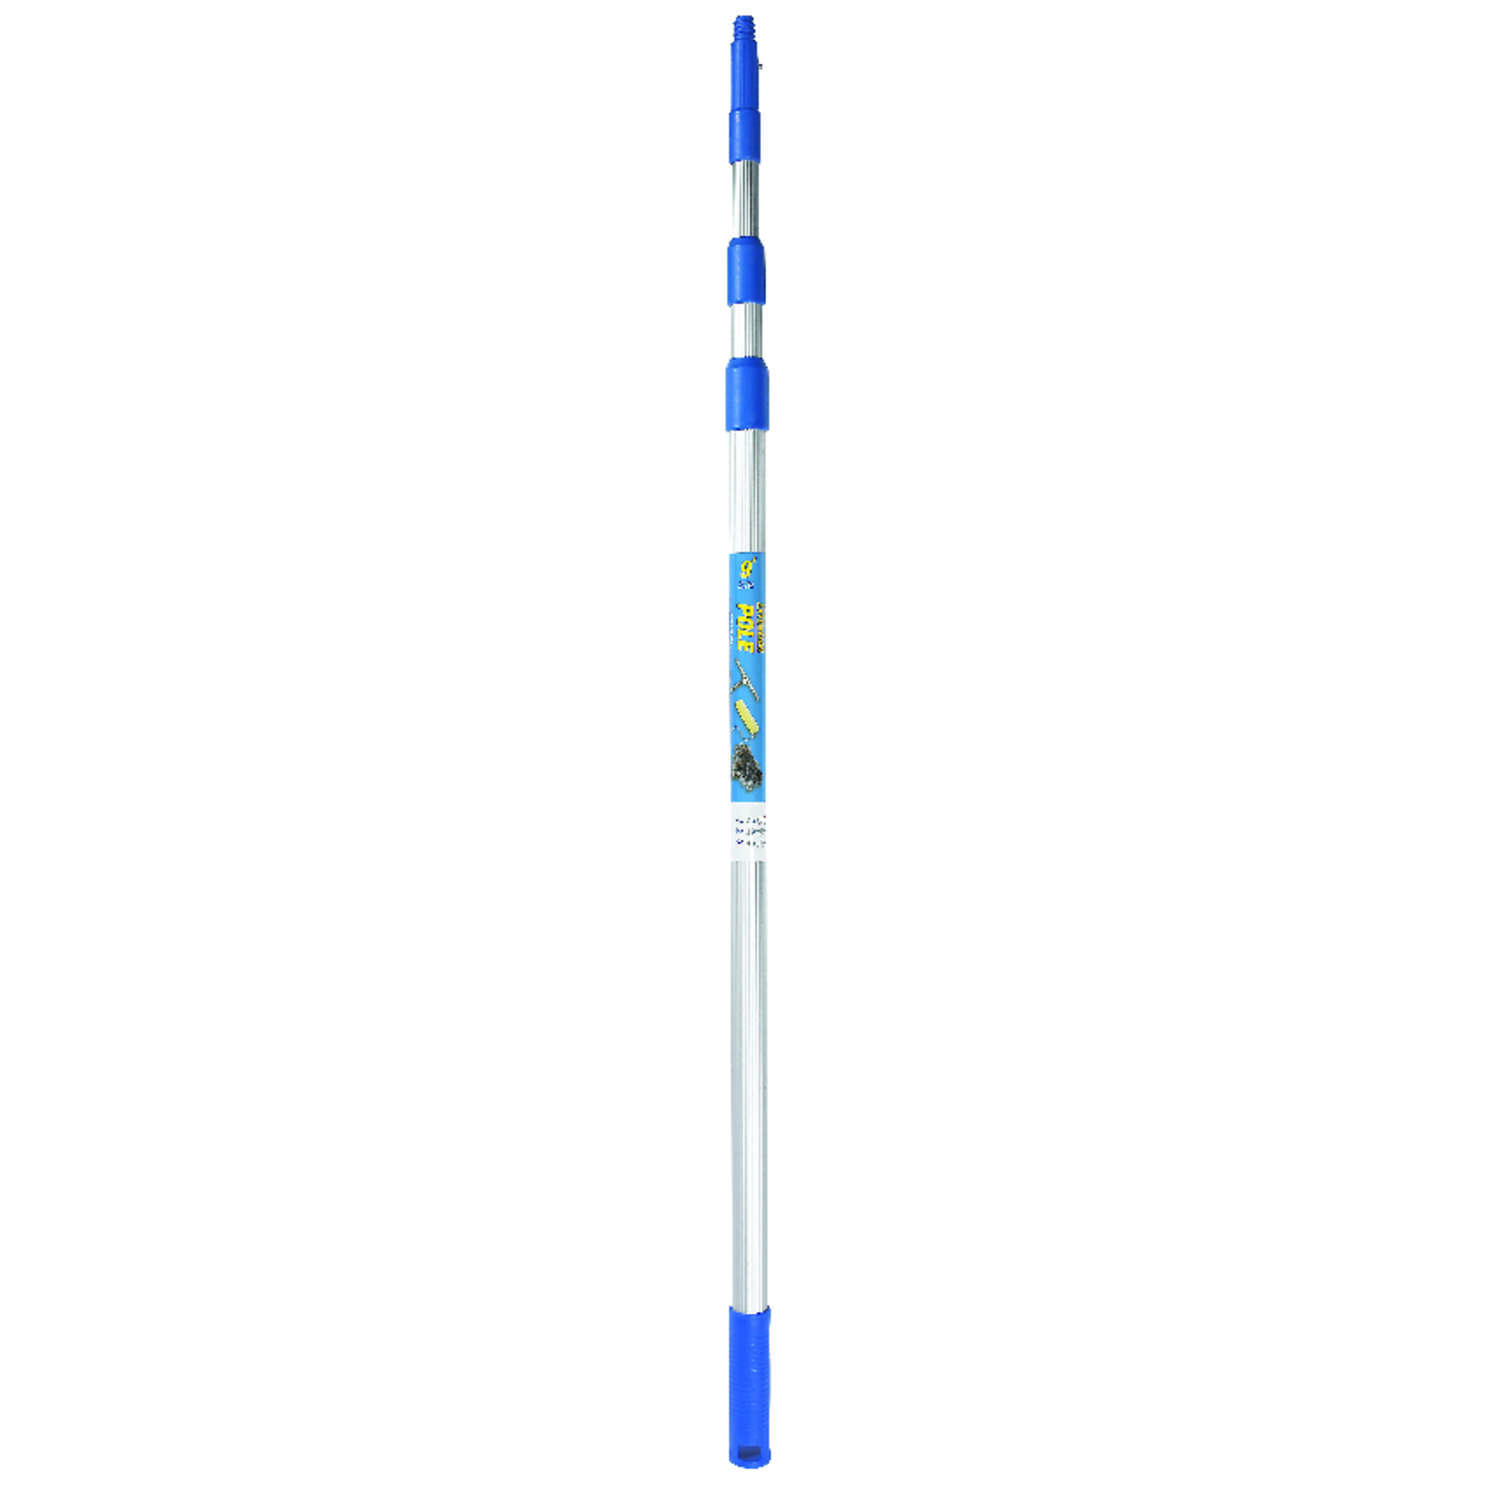 Ettore  REA-C-H  Telescoping 8  L x 1 in. Dia. Aluminum  Extension Pole